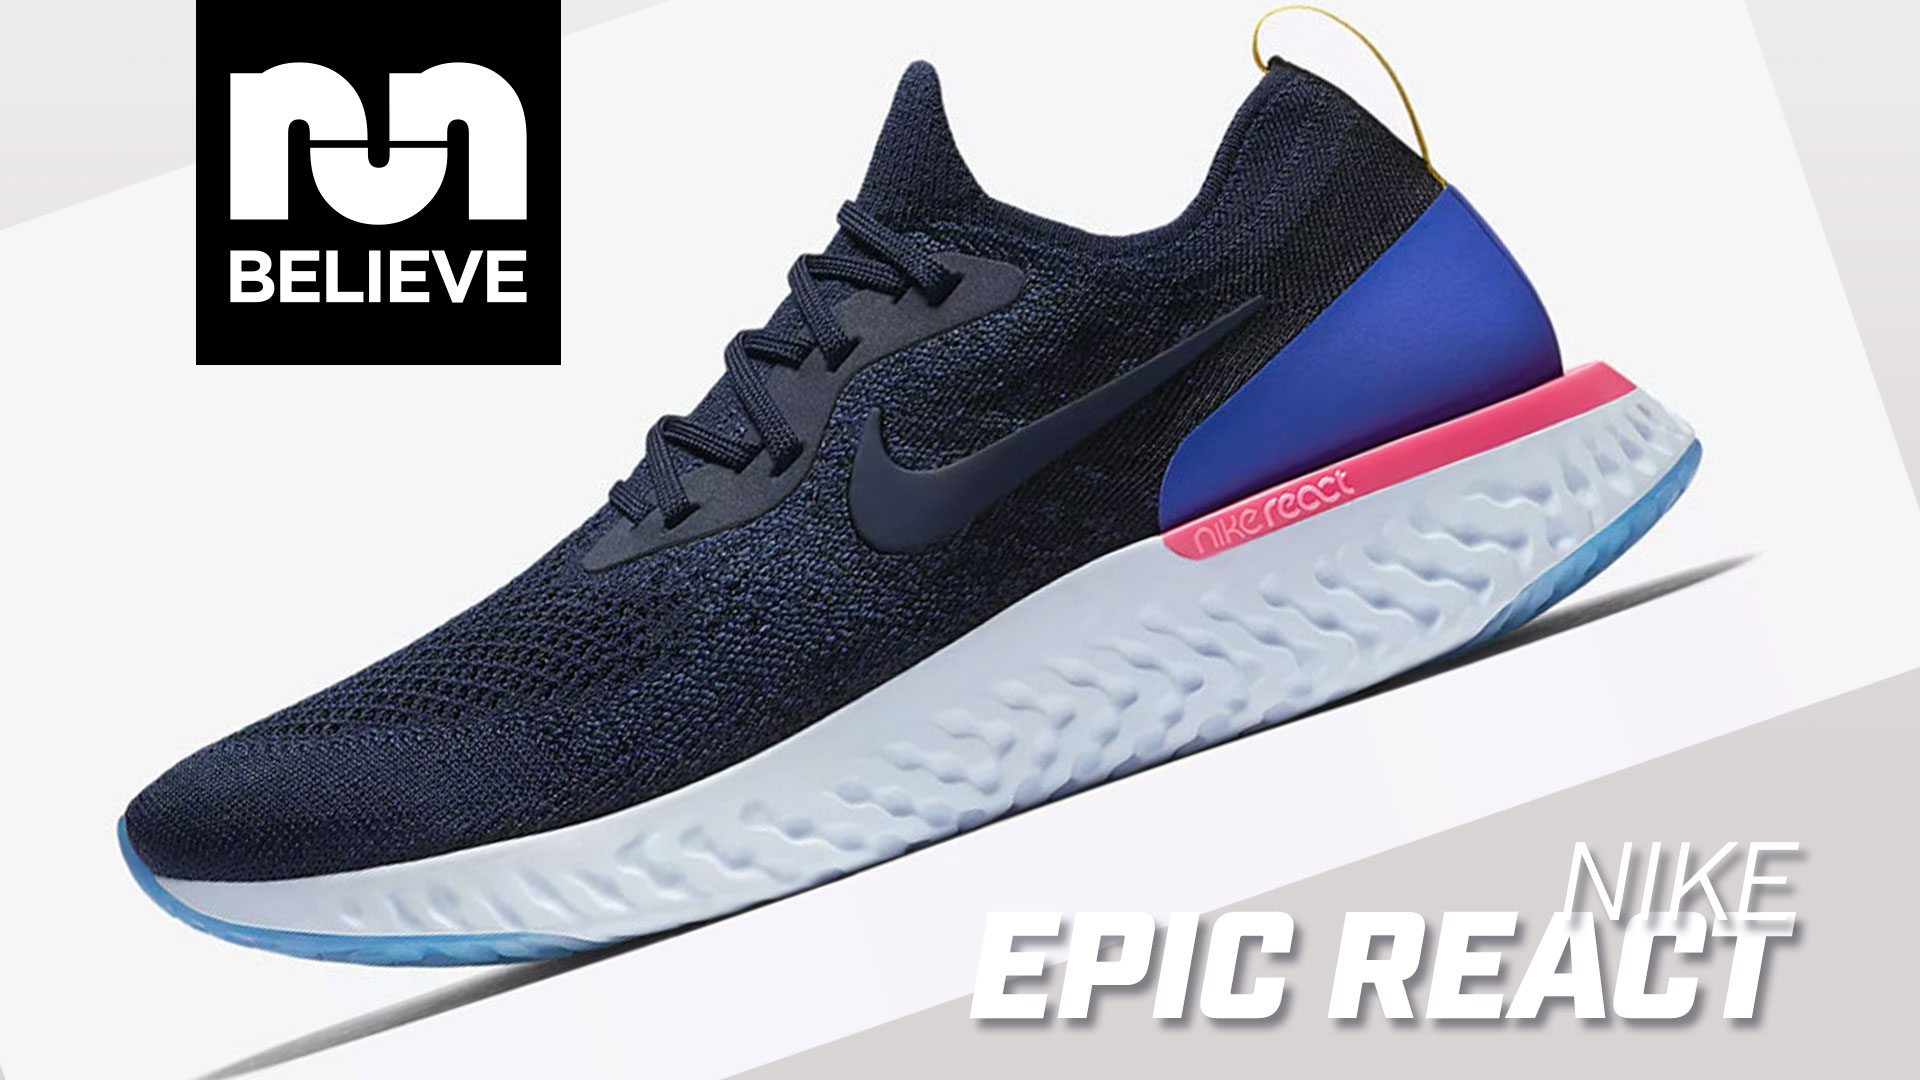 super popular b0f87 ffbb5 Nike Epic React Video Performance Review for Runners